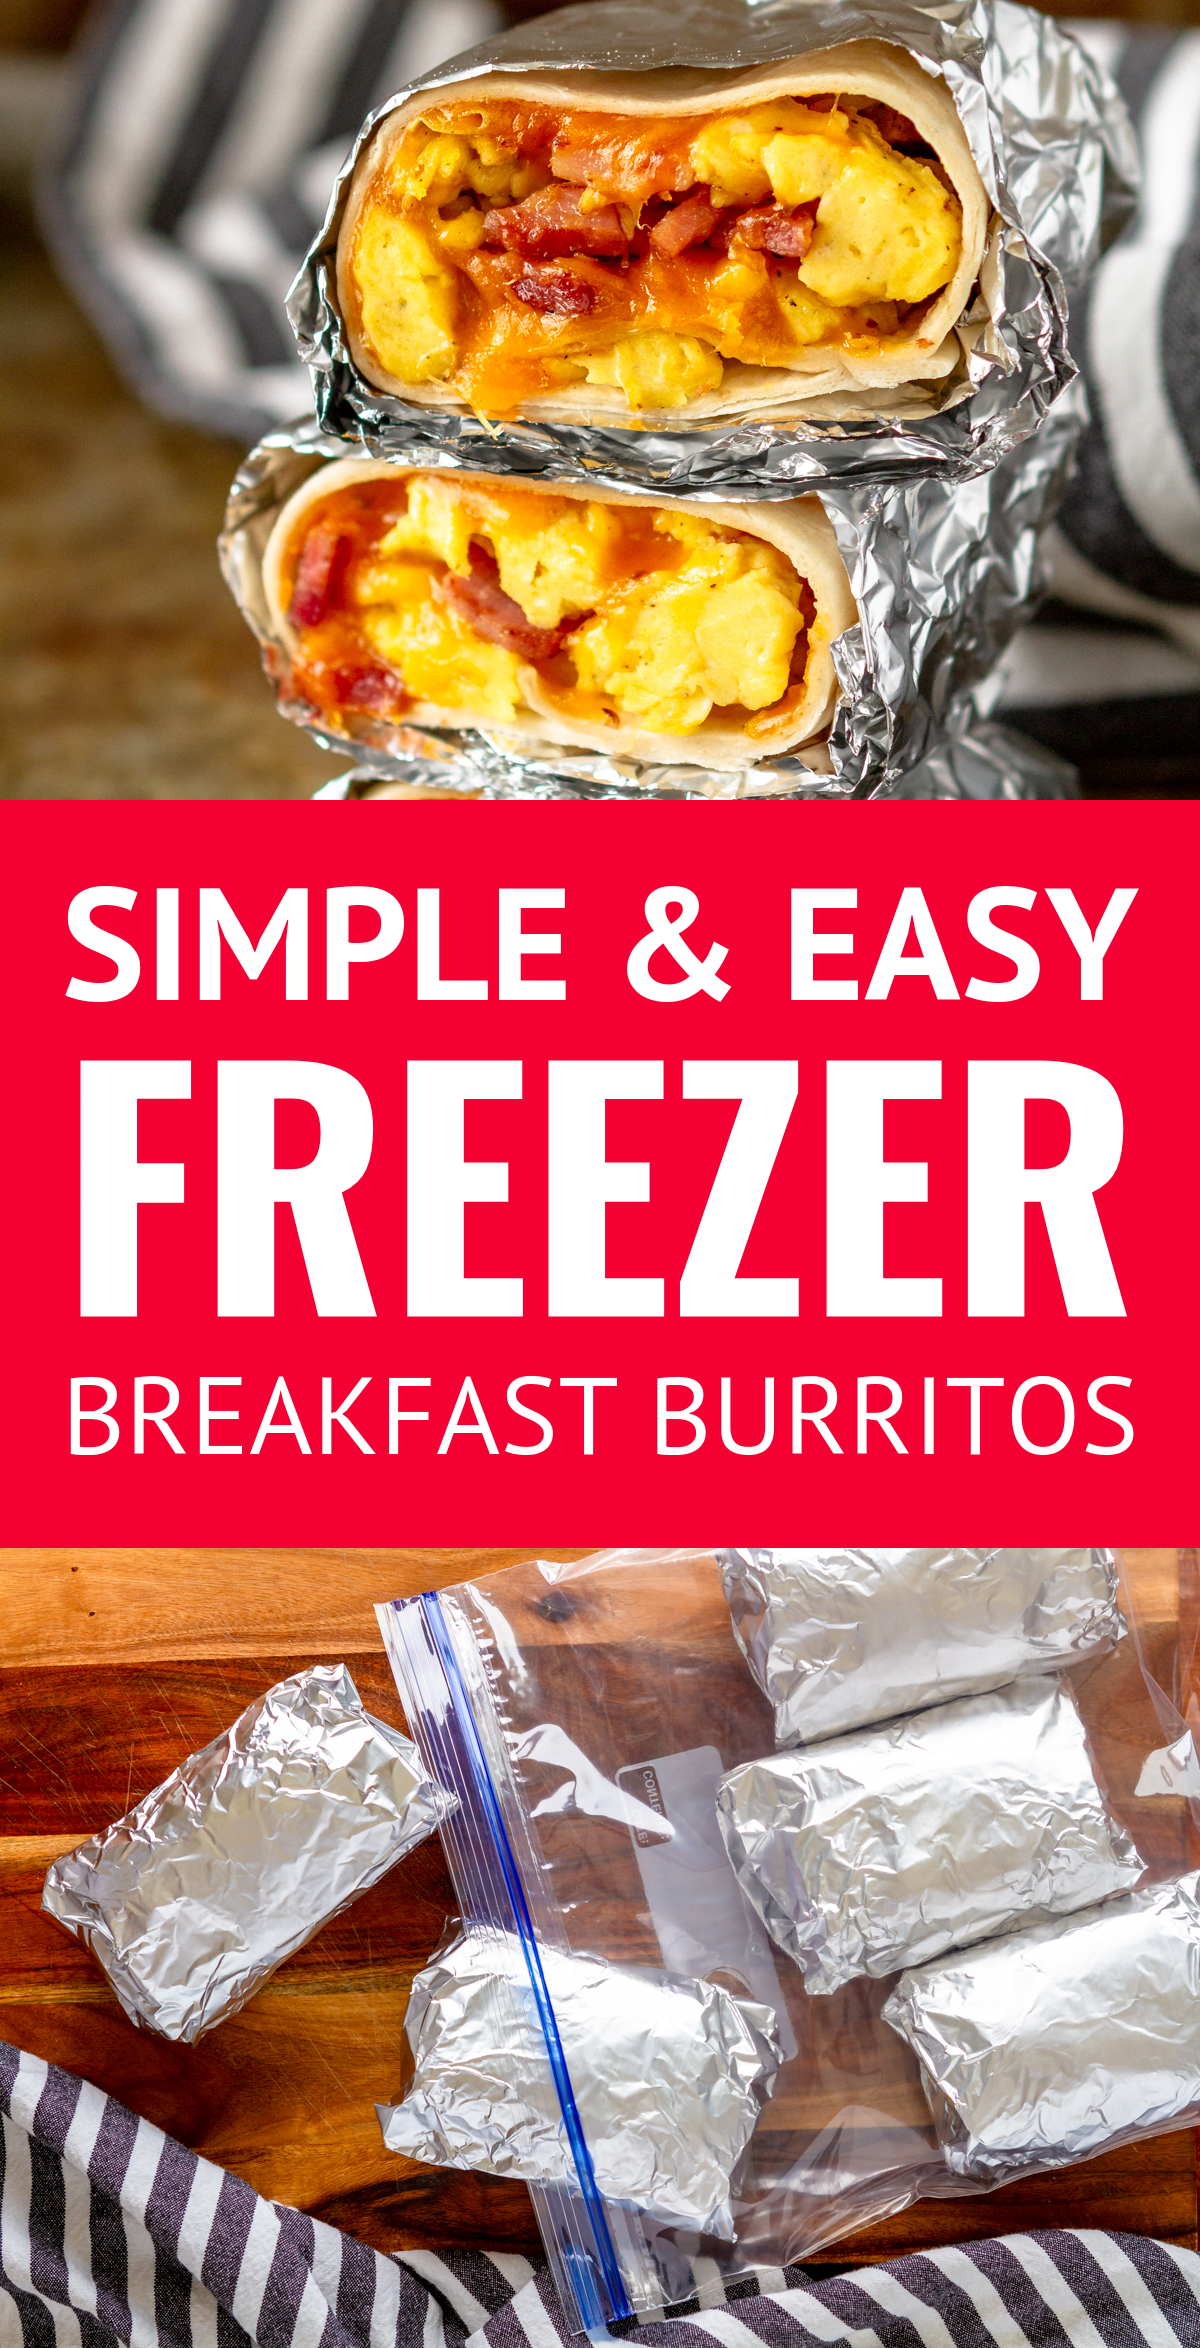 Simple and Easy Ham Egg & Cheese Freezer Breakfast Burritos images